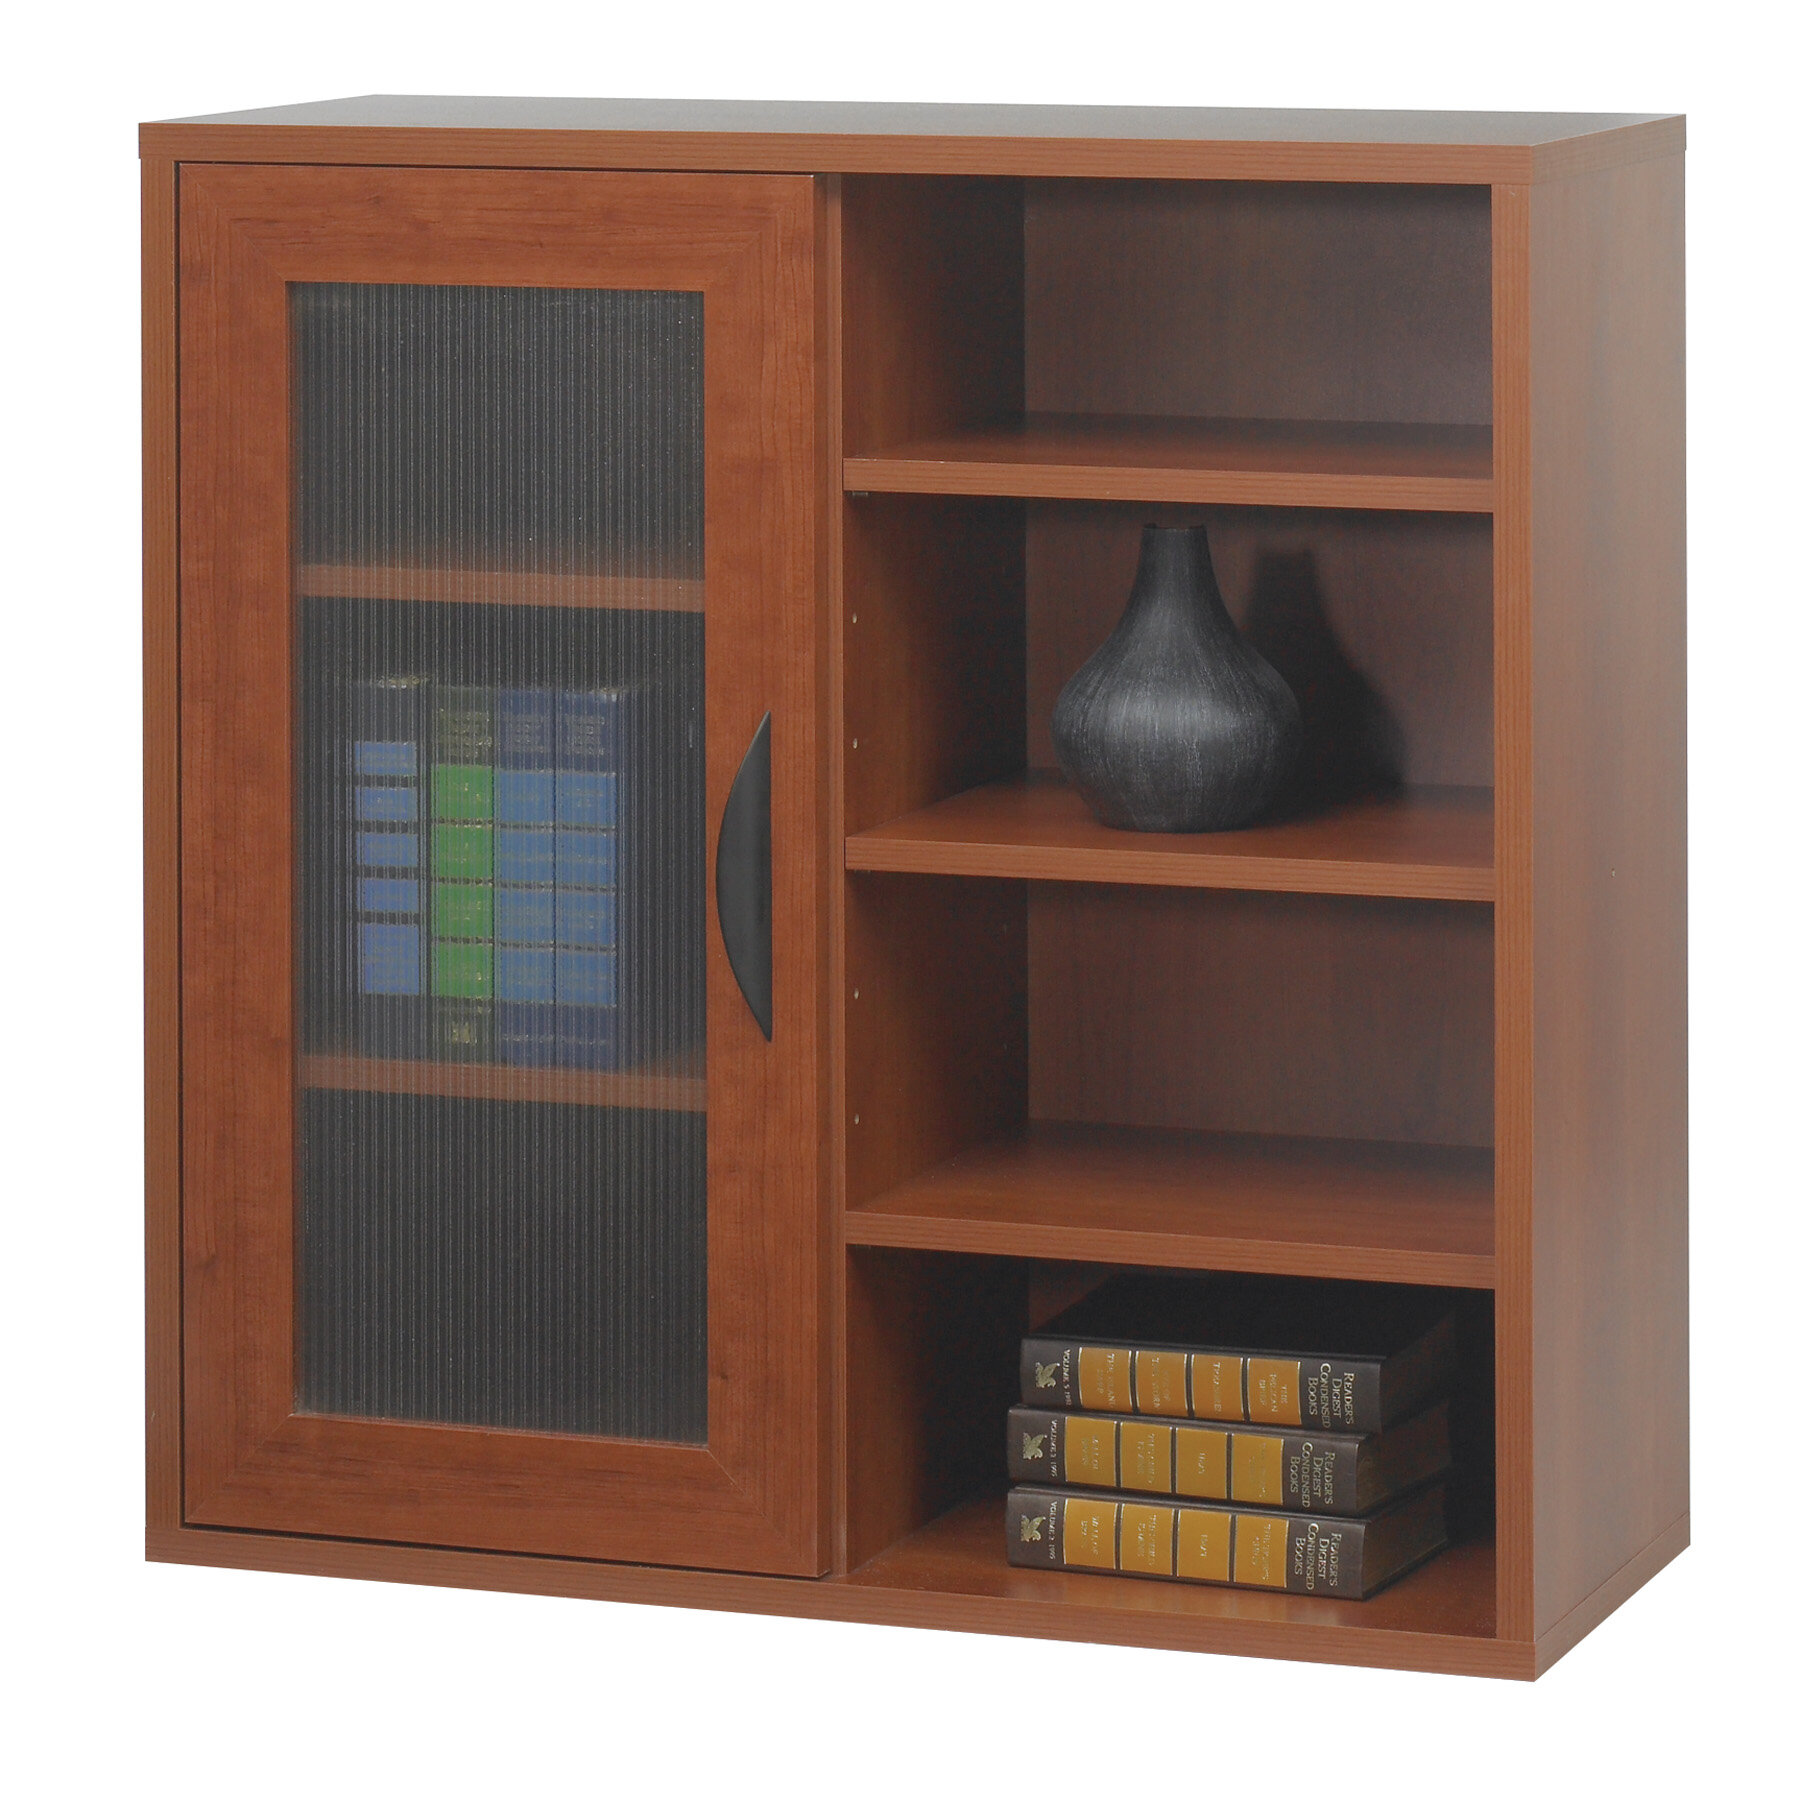 coaster bookcase accents furnishings product hope home open contemporary